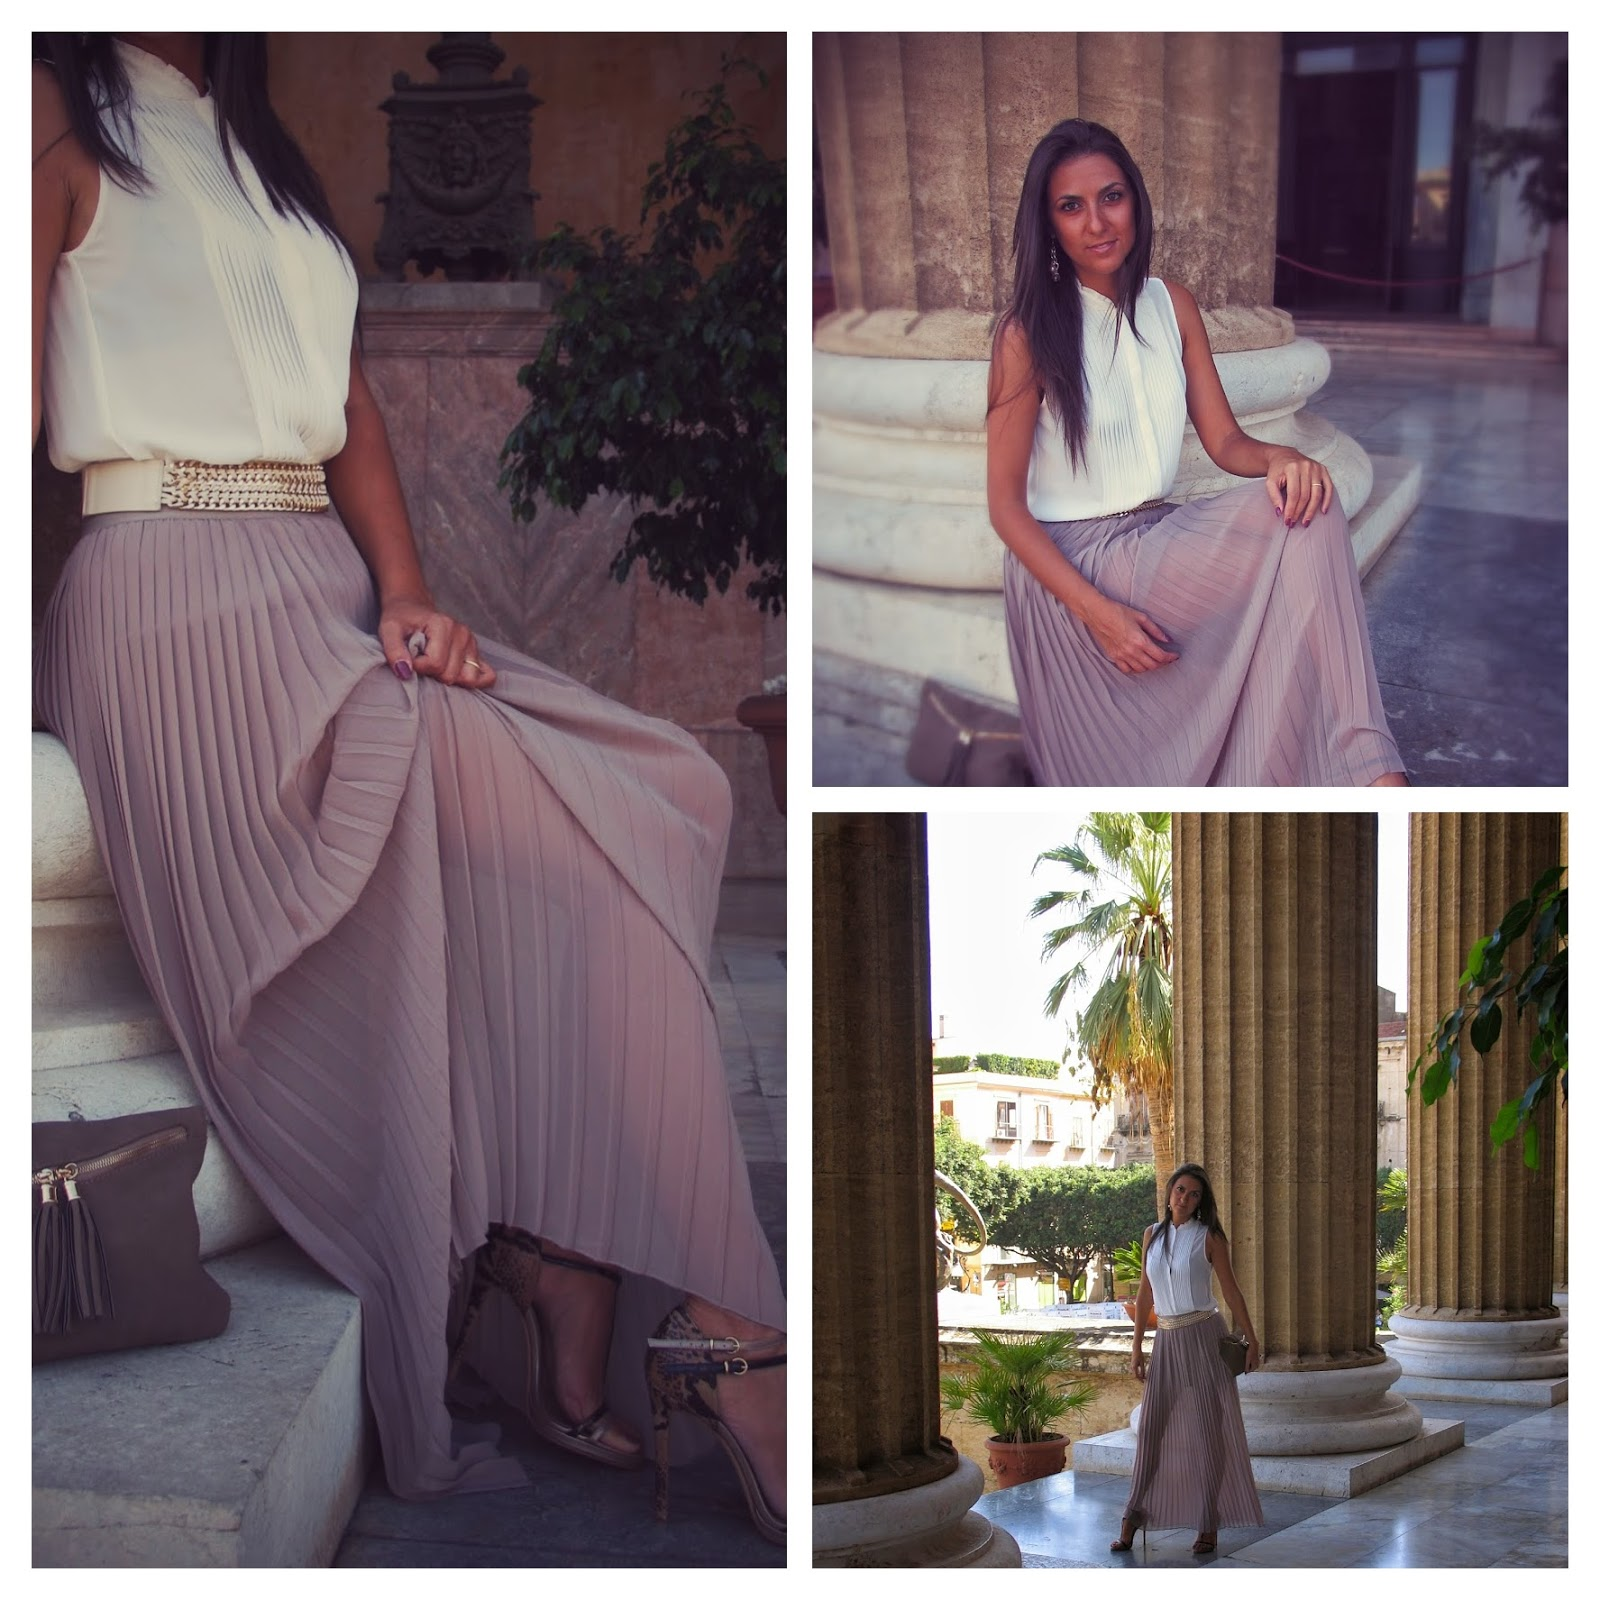 #whitesilkshirt, #sicilia, #look, #long, #pleatedskirt